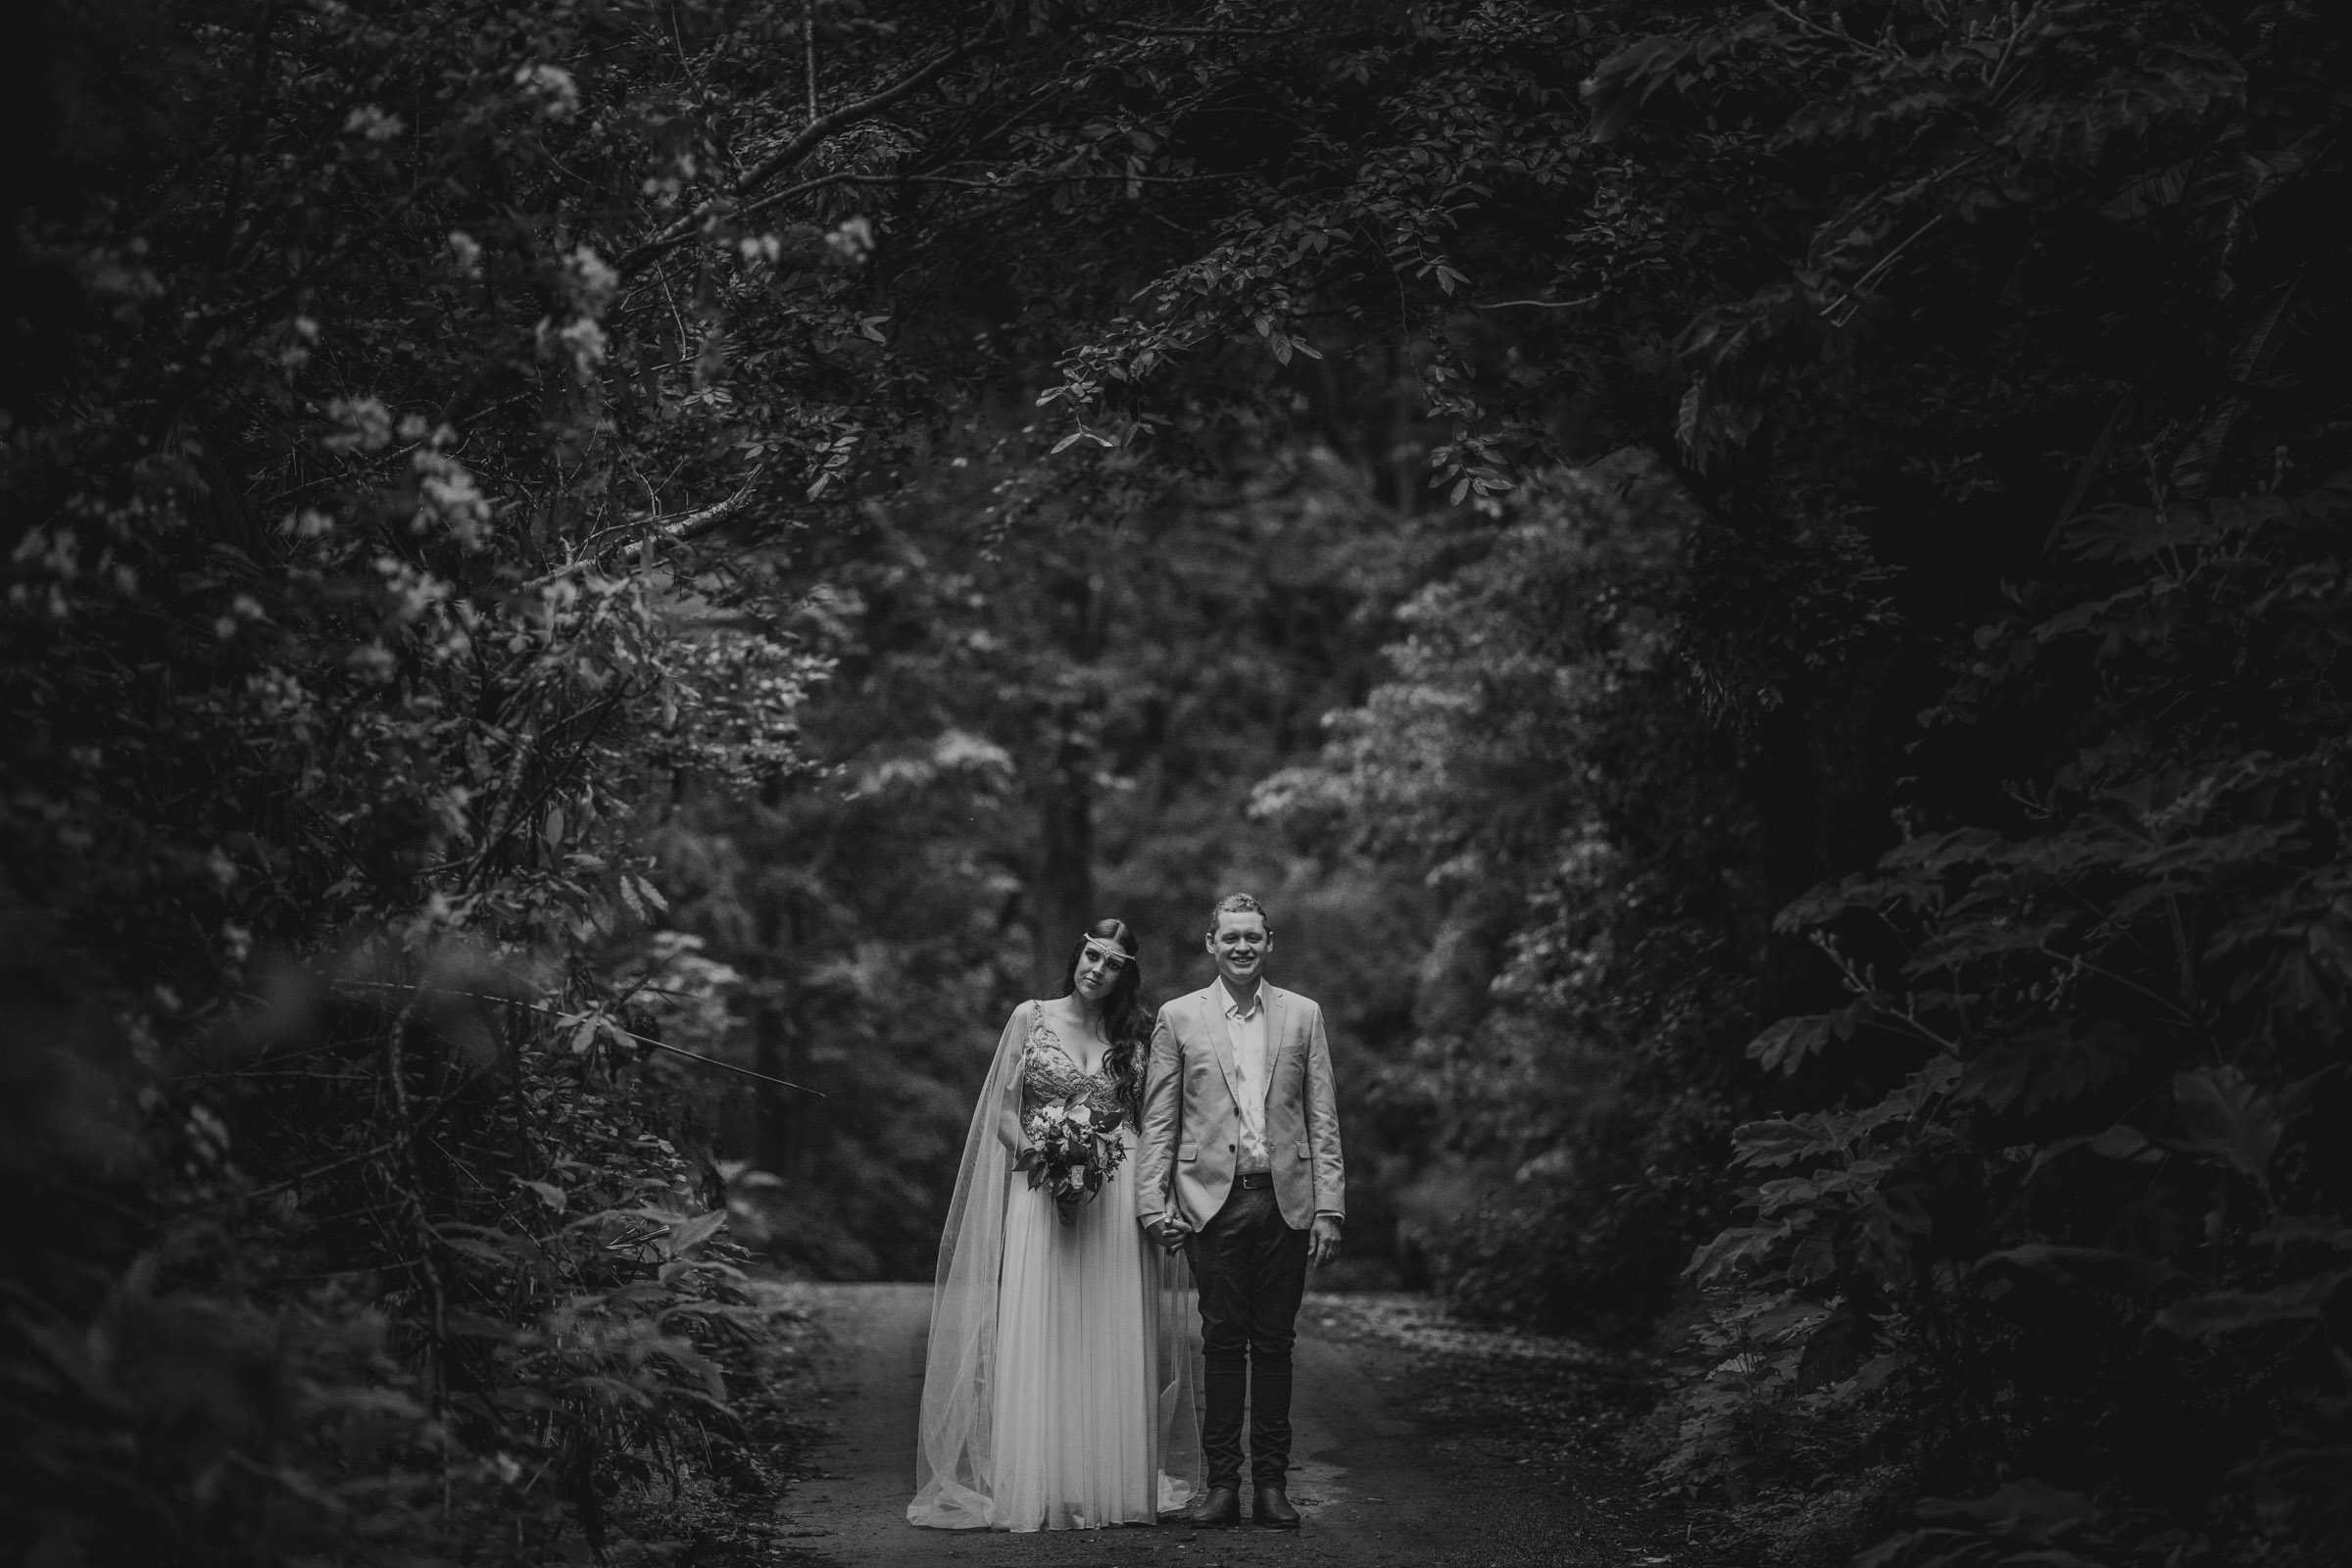 Chris+Emma+Sandon+Point+Wedding-103.jpg